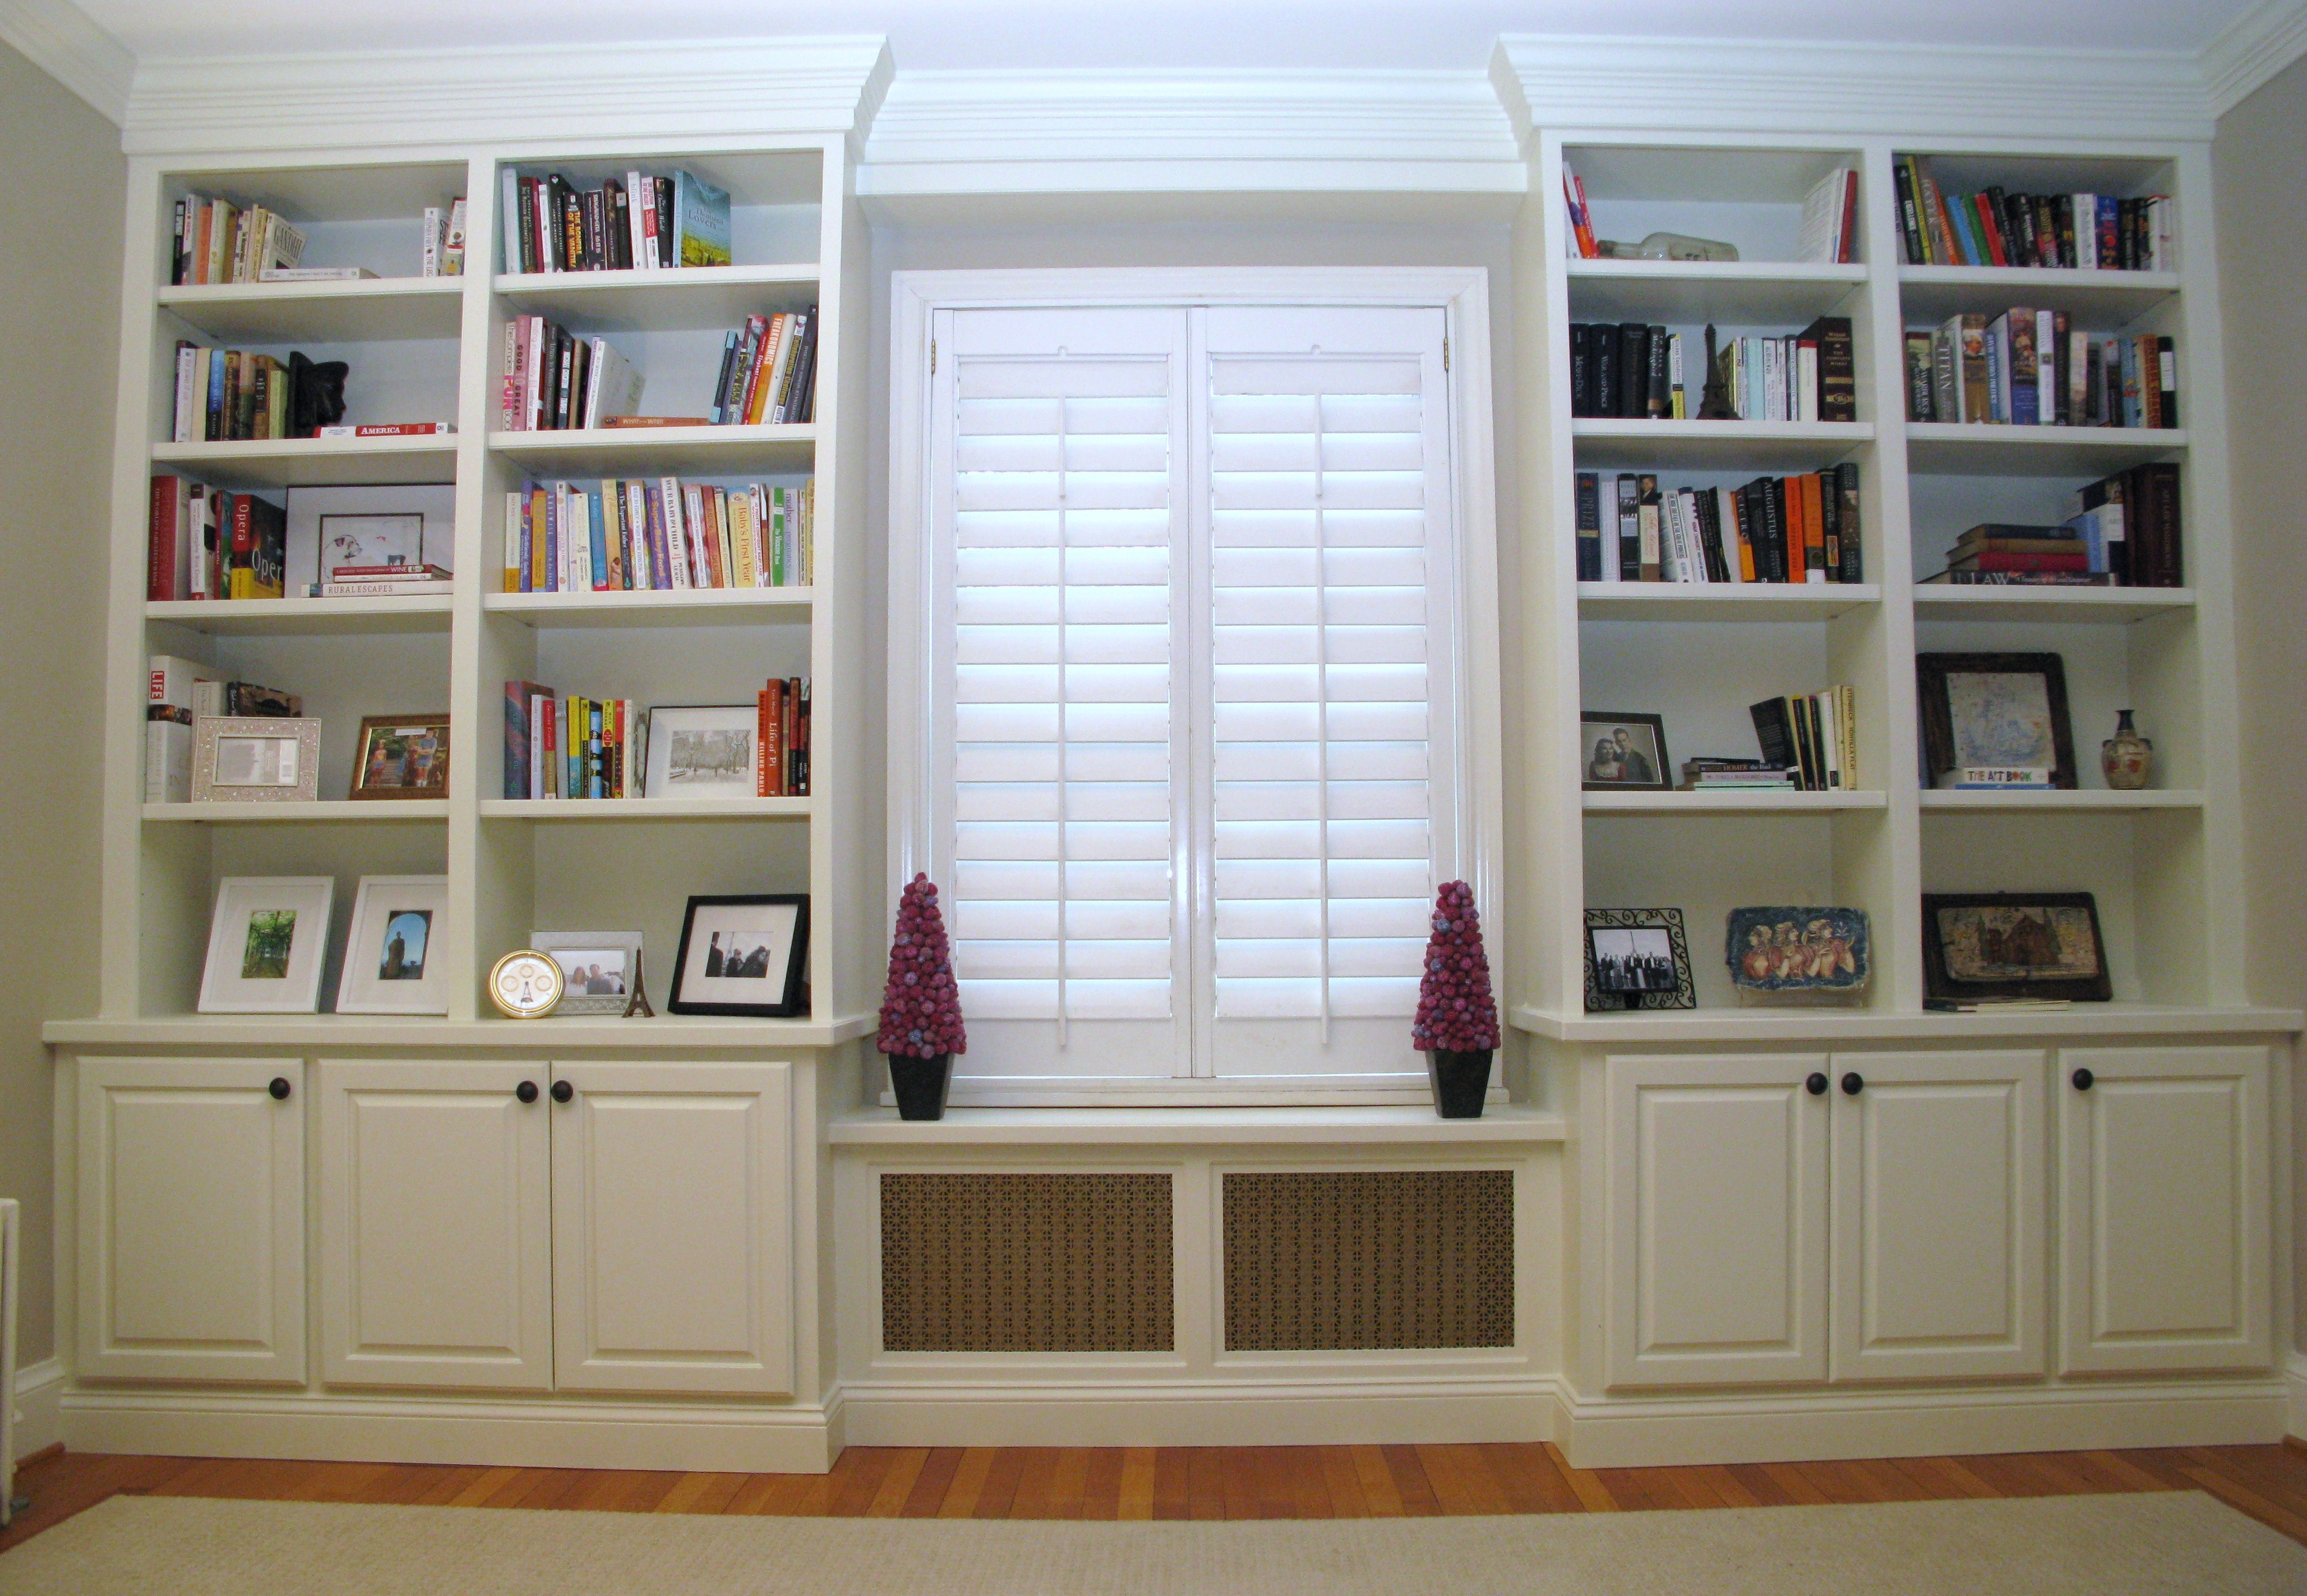 Custom Home Renovations Wasington Dc Archive Four Brothers Llc Regarding Radiator Cover Bookshelf (#7 of 15)